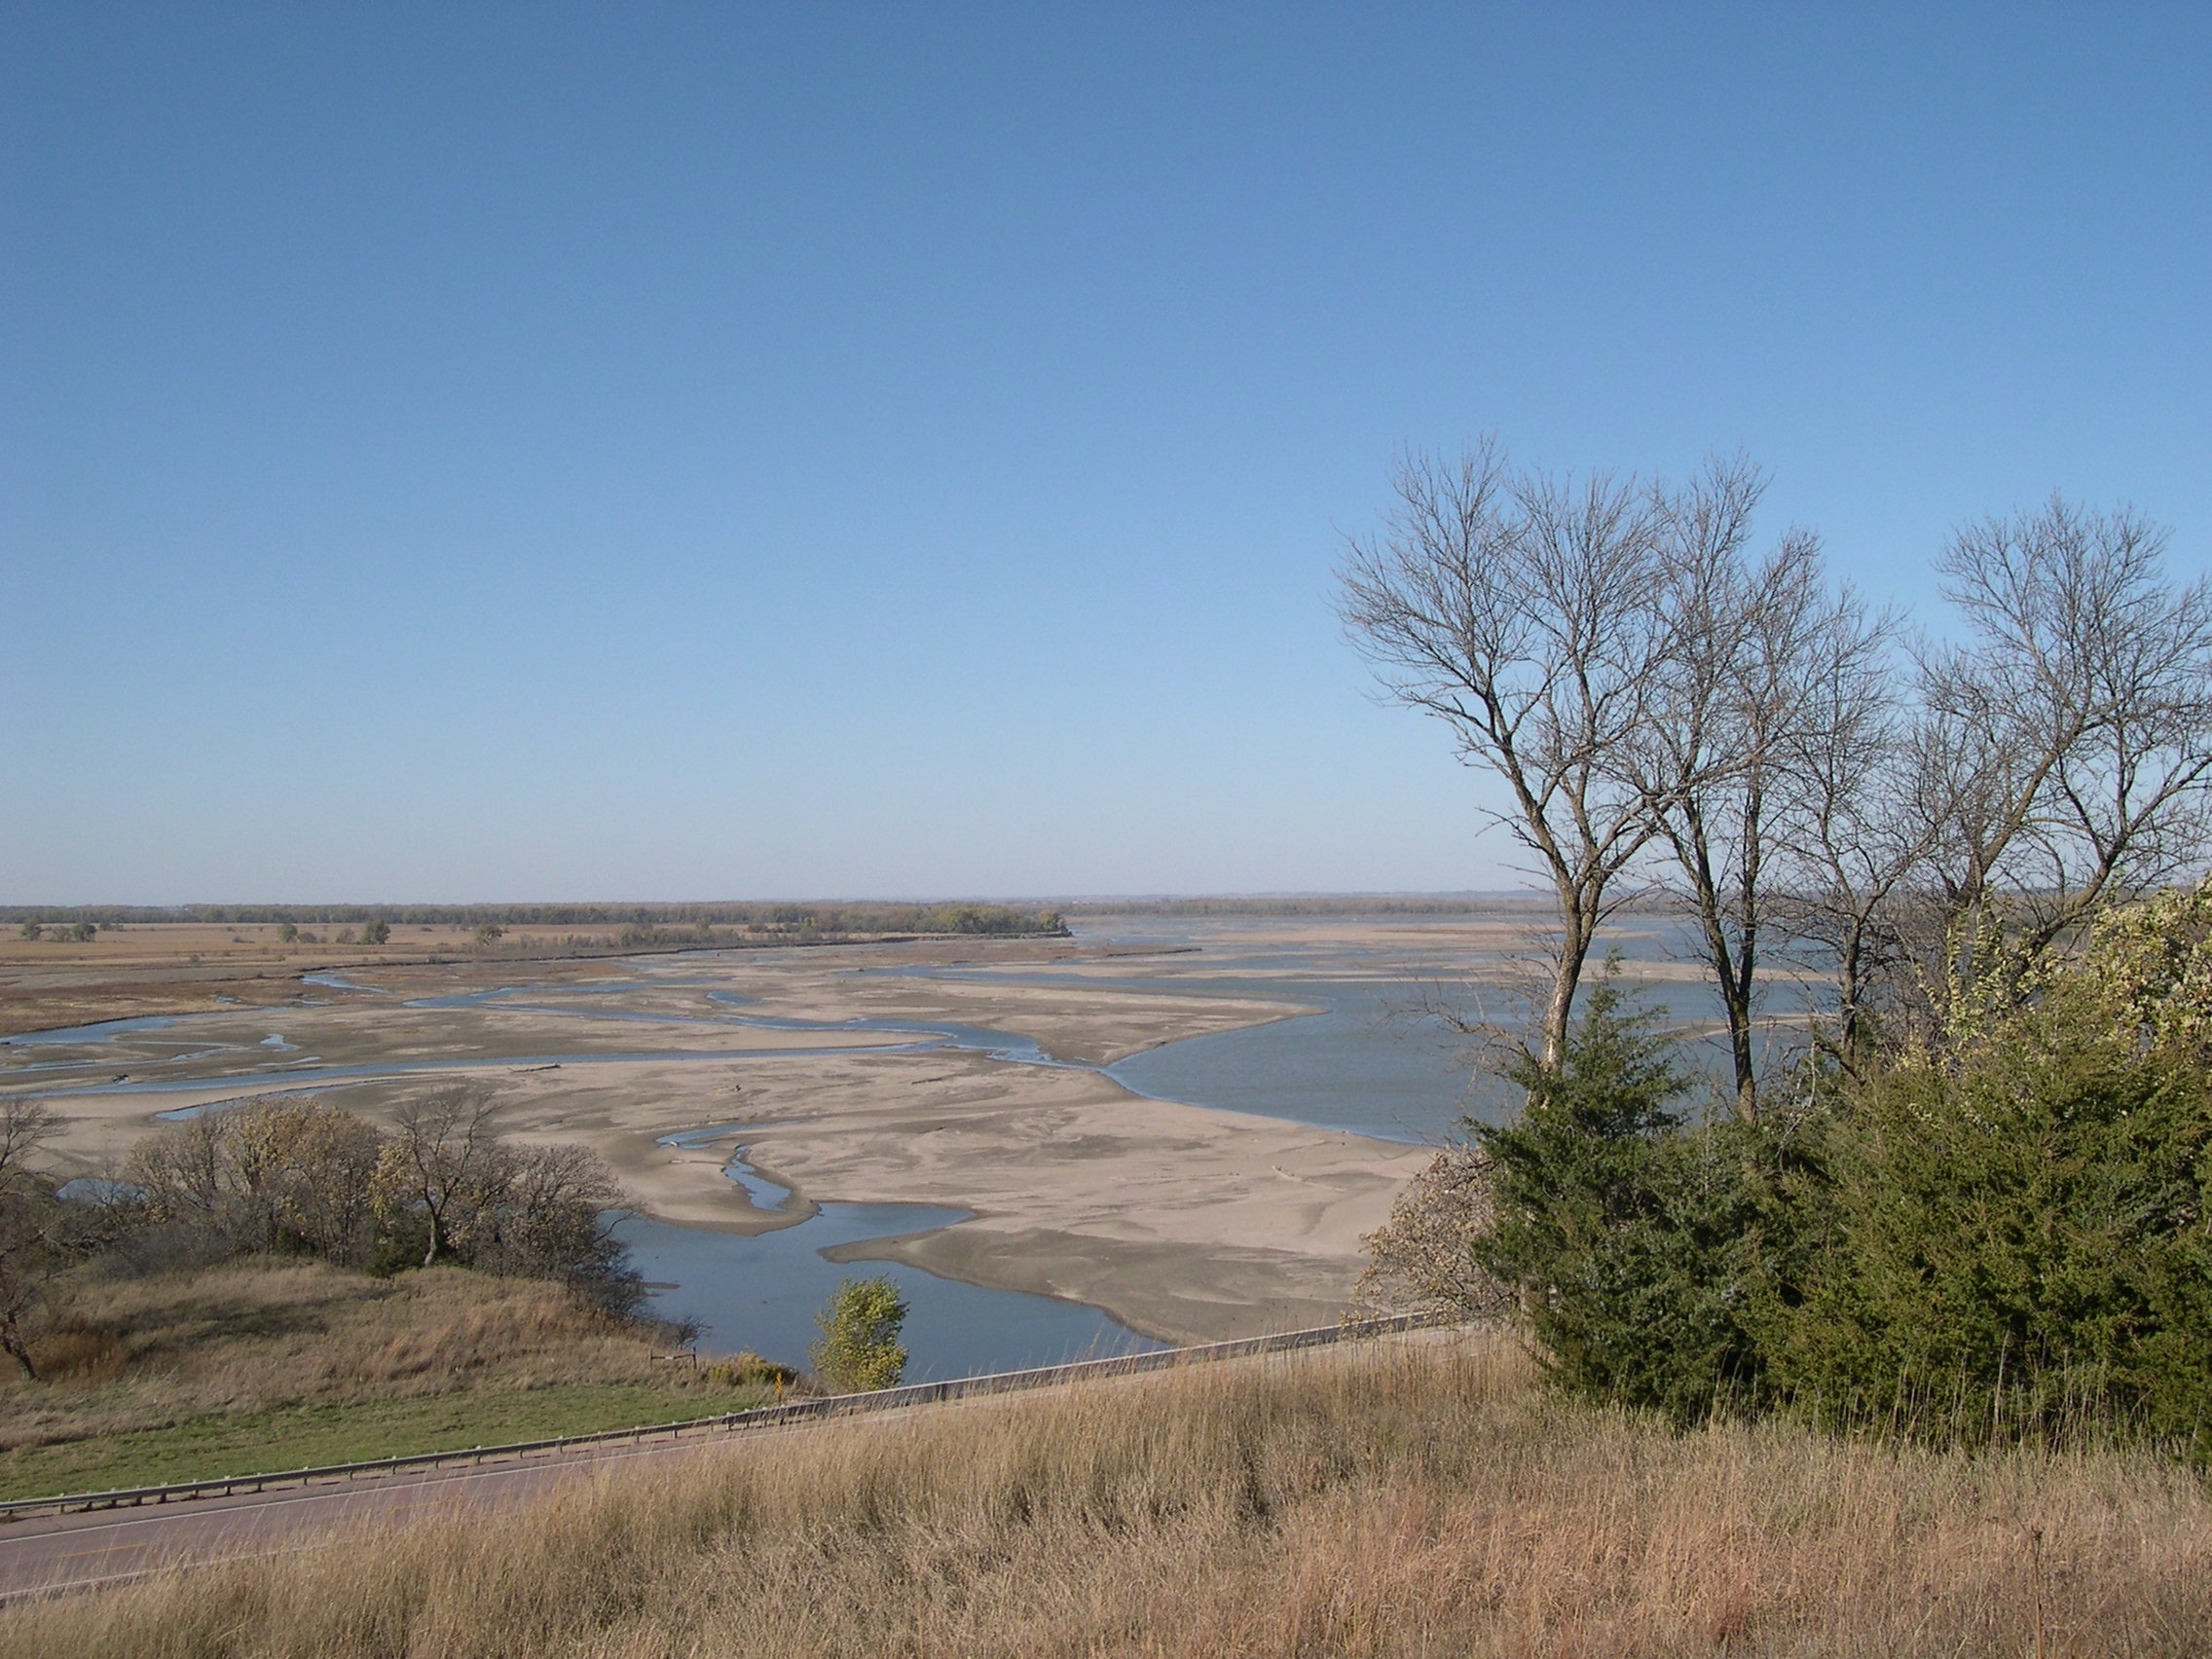 Missouri River as seen from near marker.